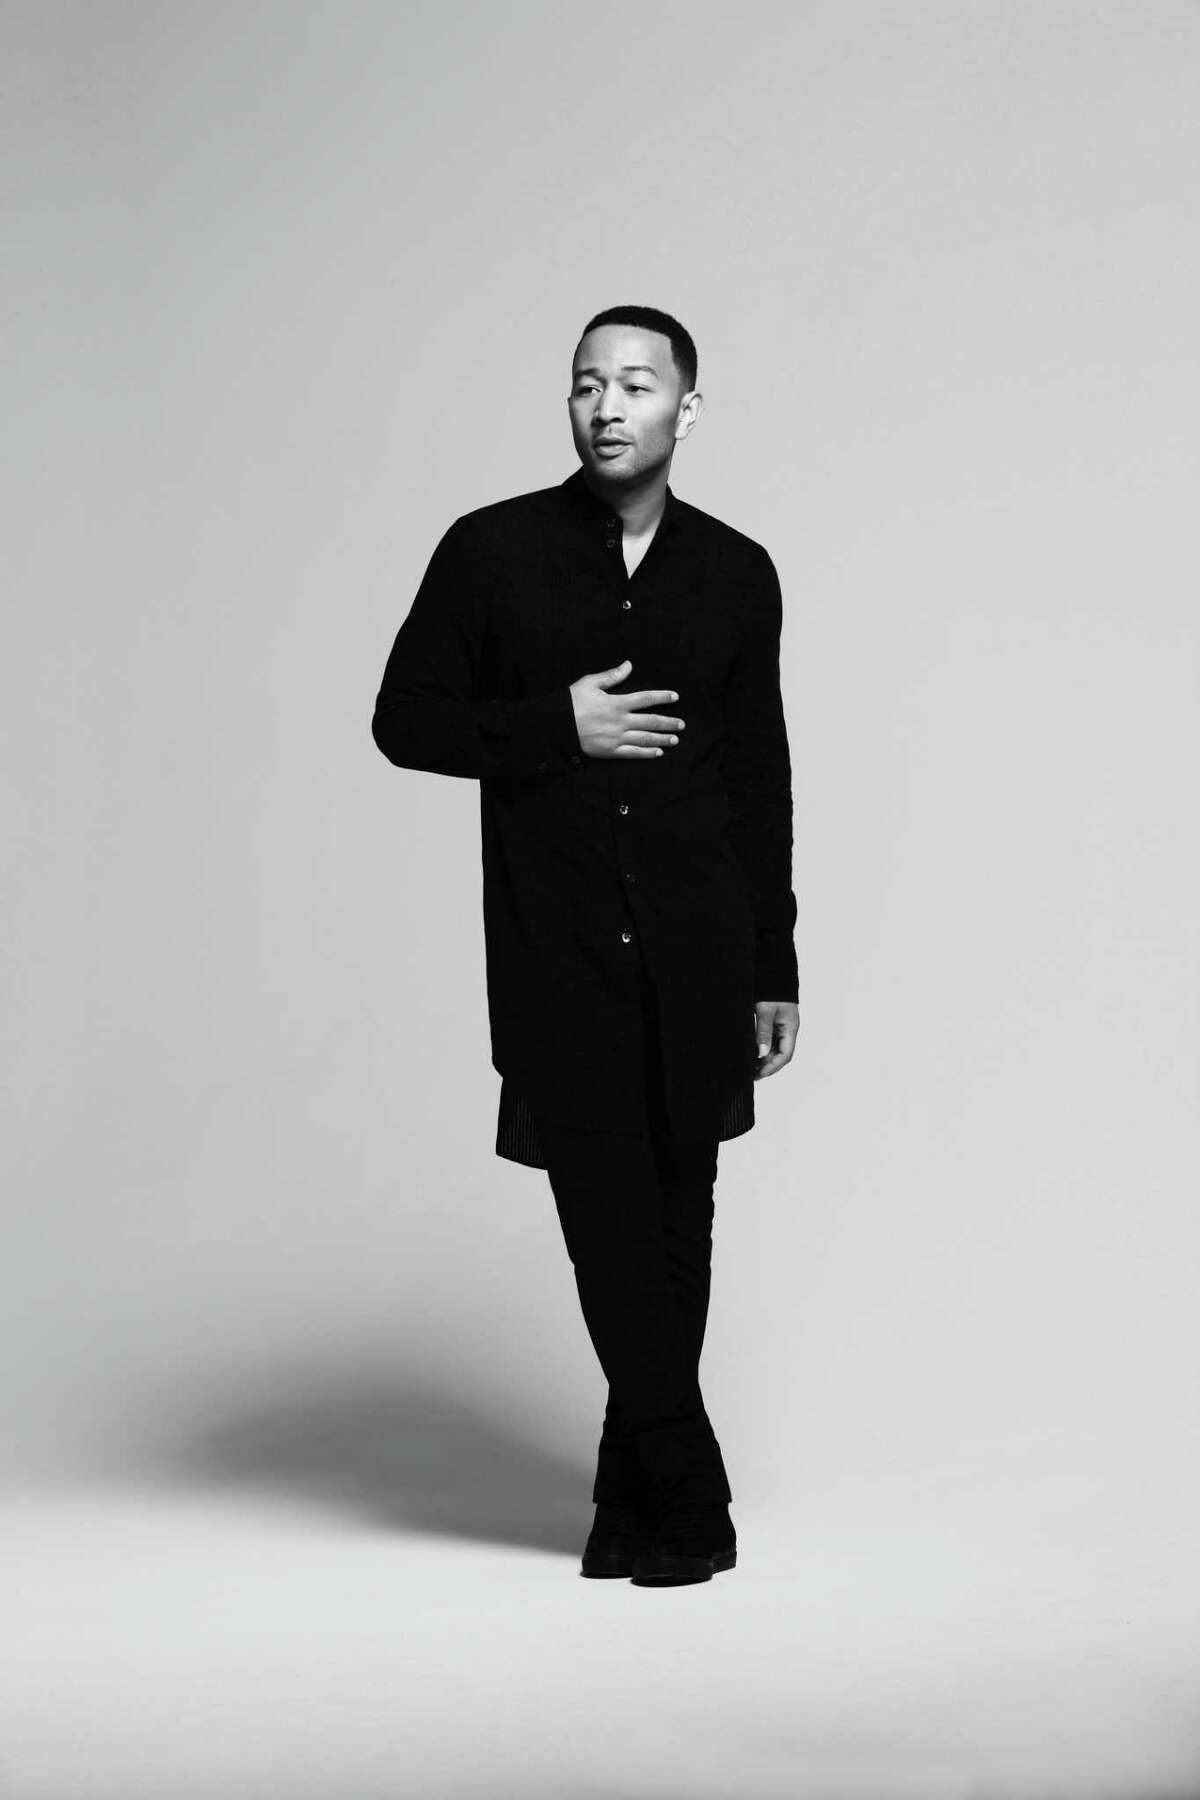 John Legend will perform at Foxwoods Resort Casino on his